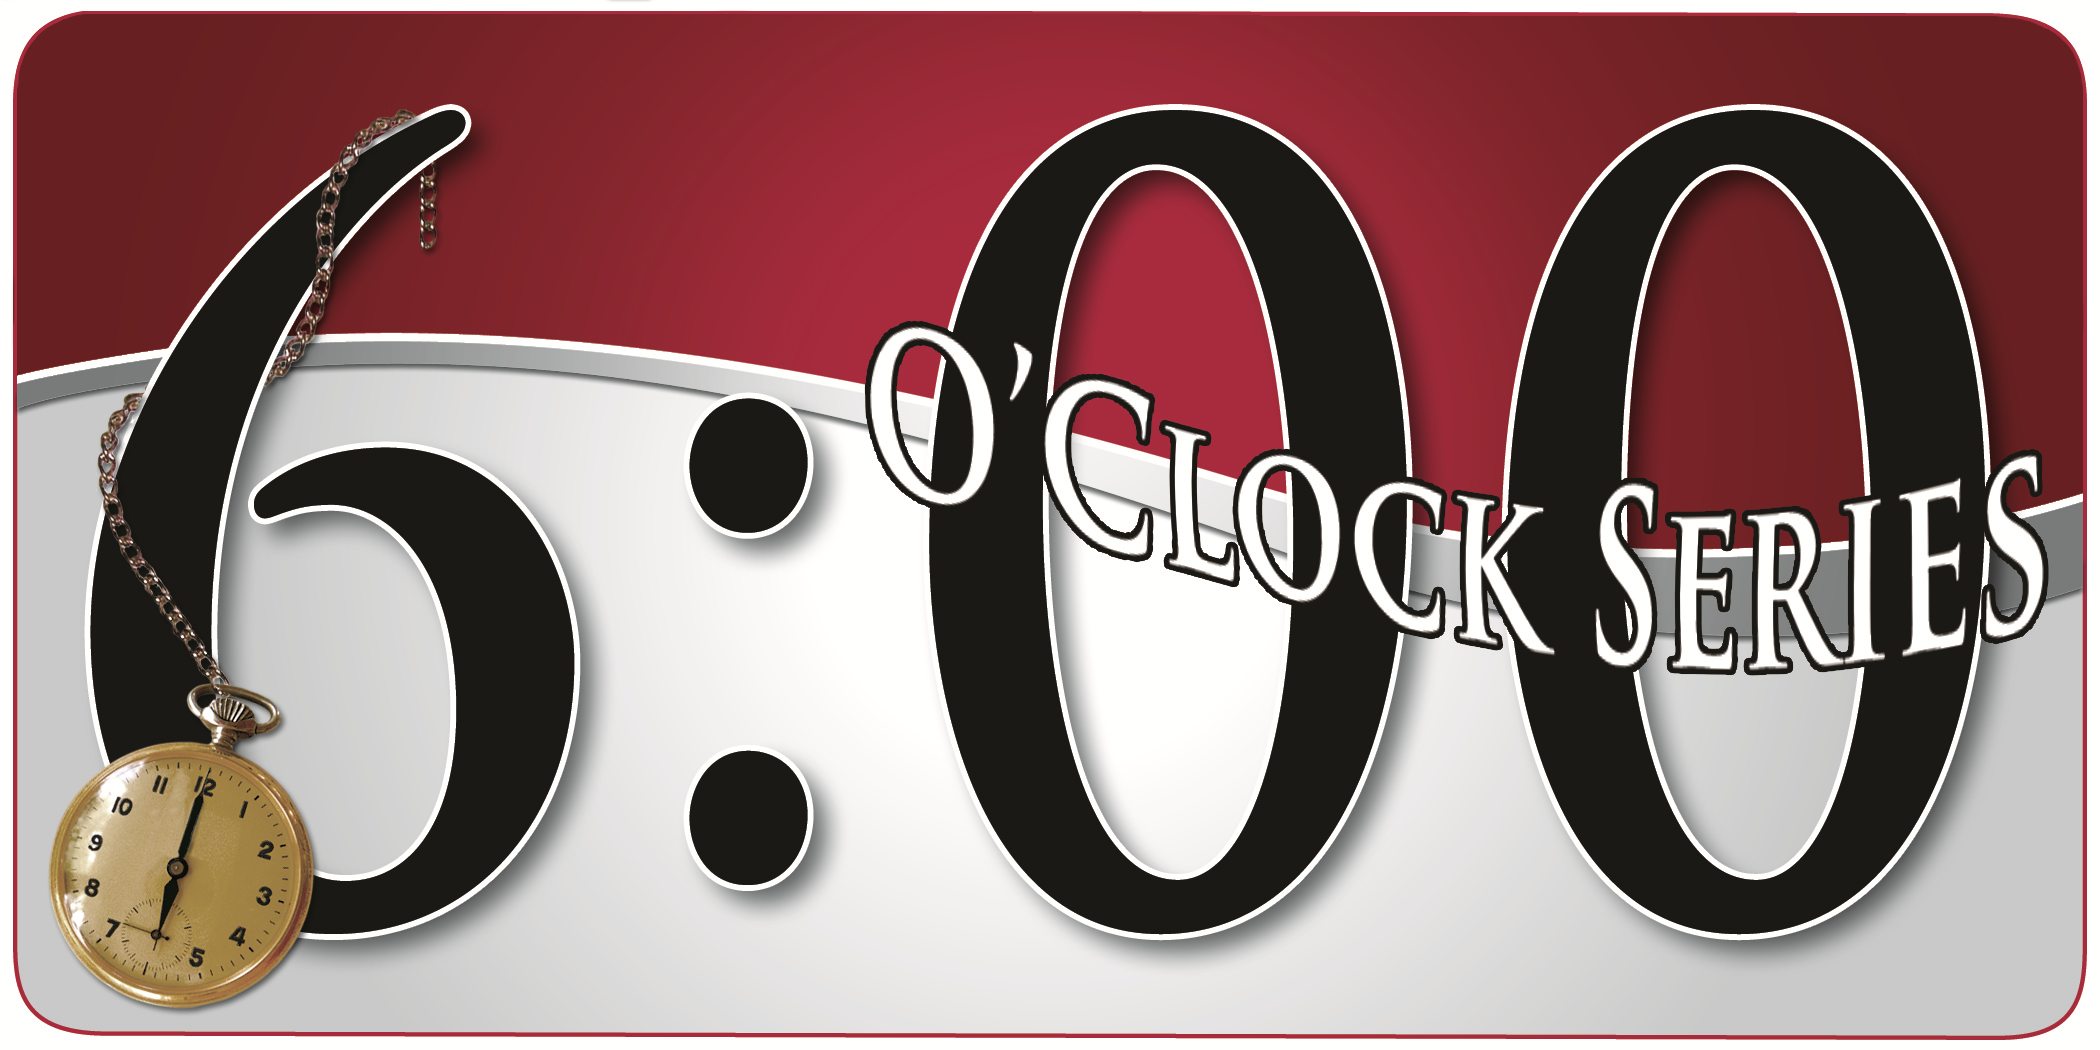 6 o'clock series logo